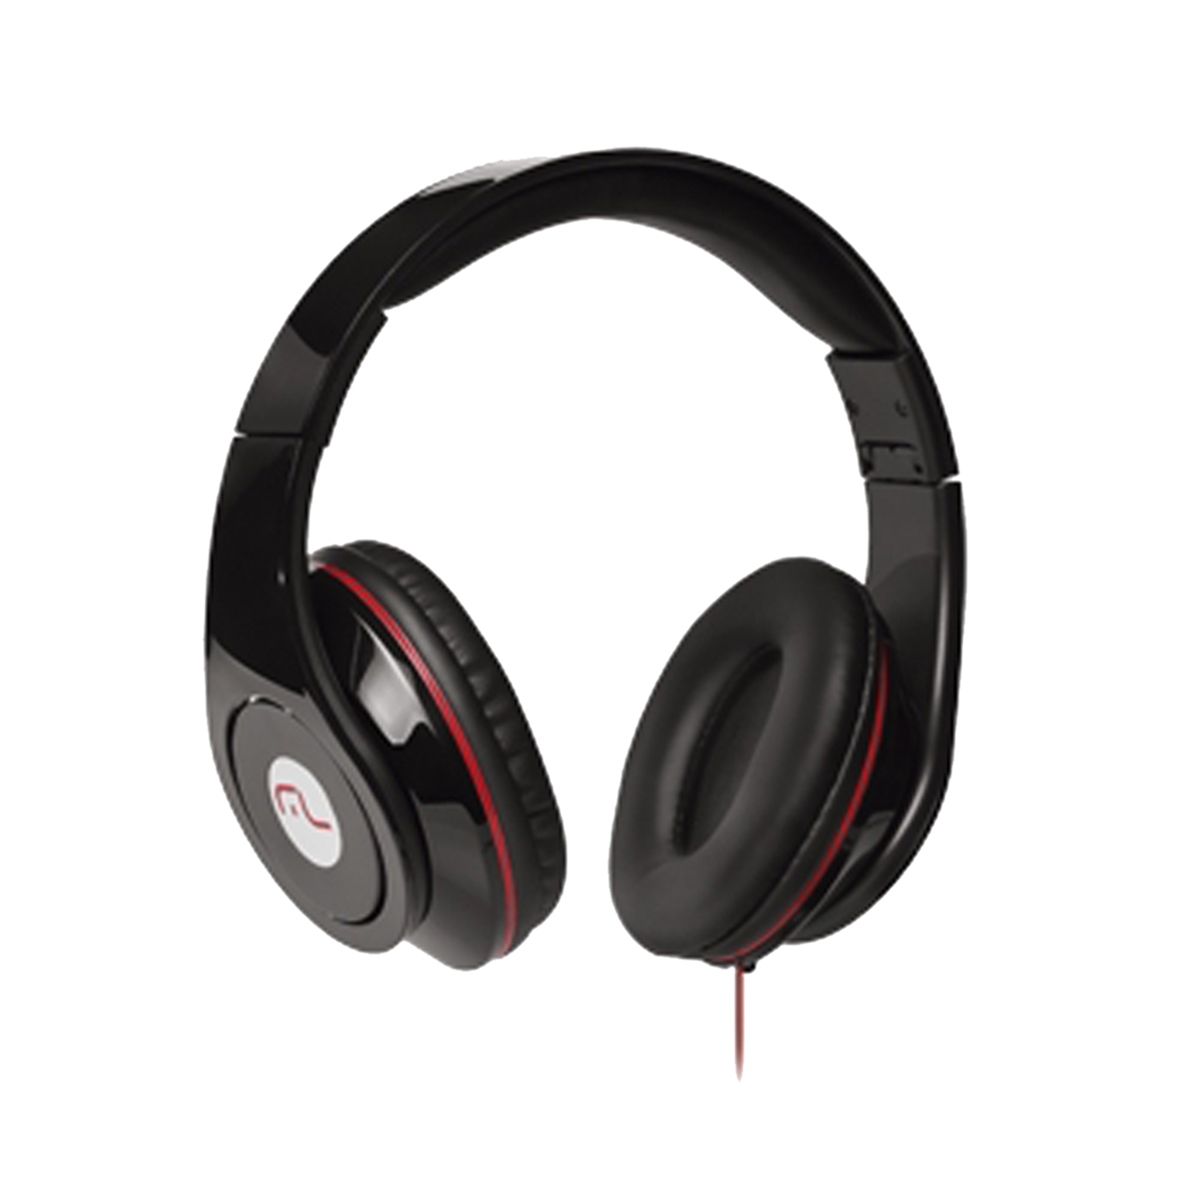 Fone de Ouvido Headphone Monster Preto PH074 - Multilaser